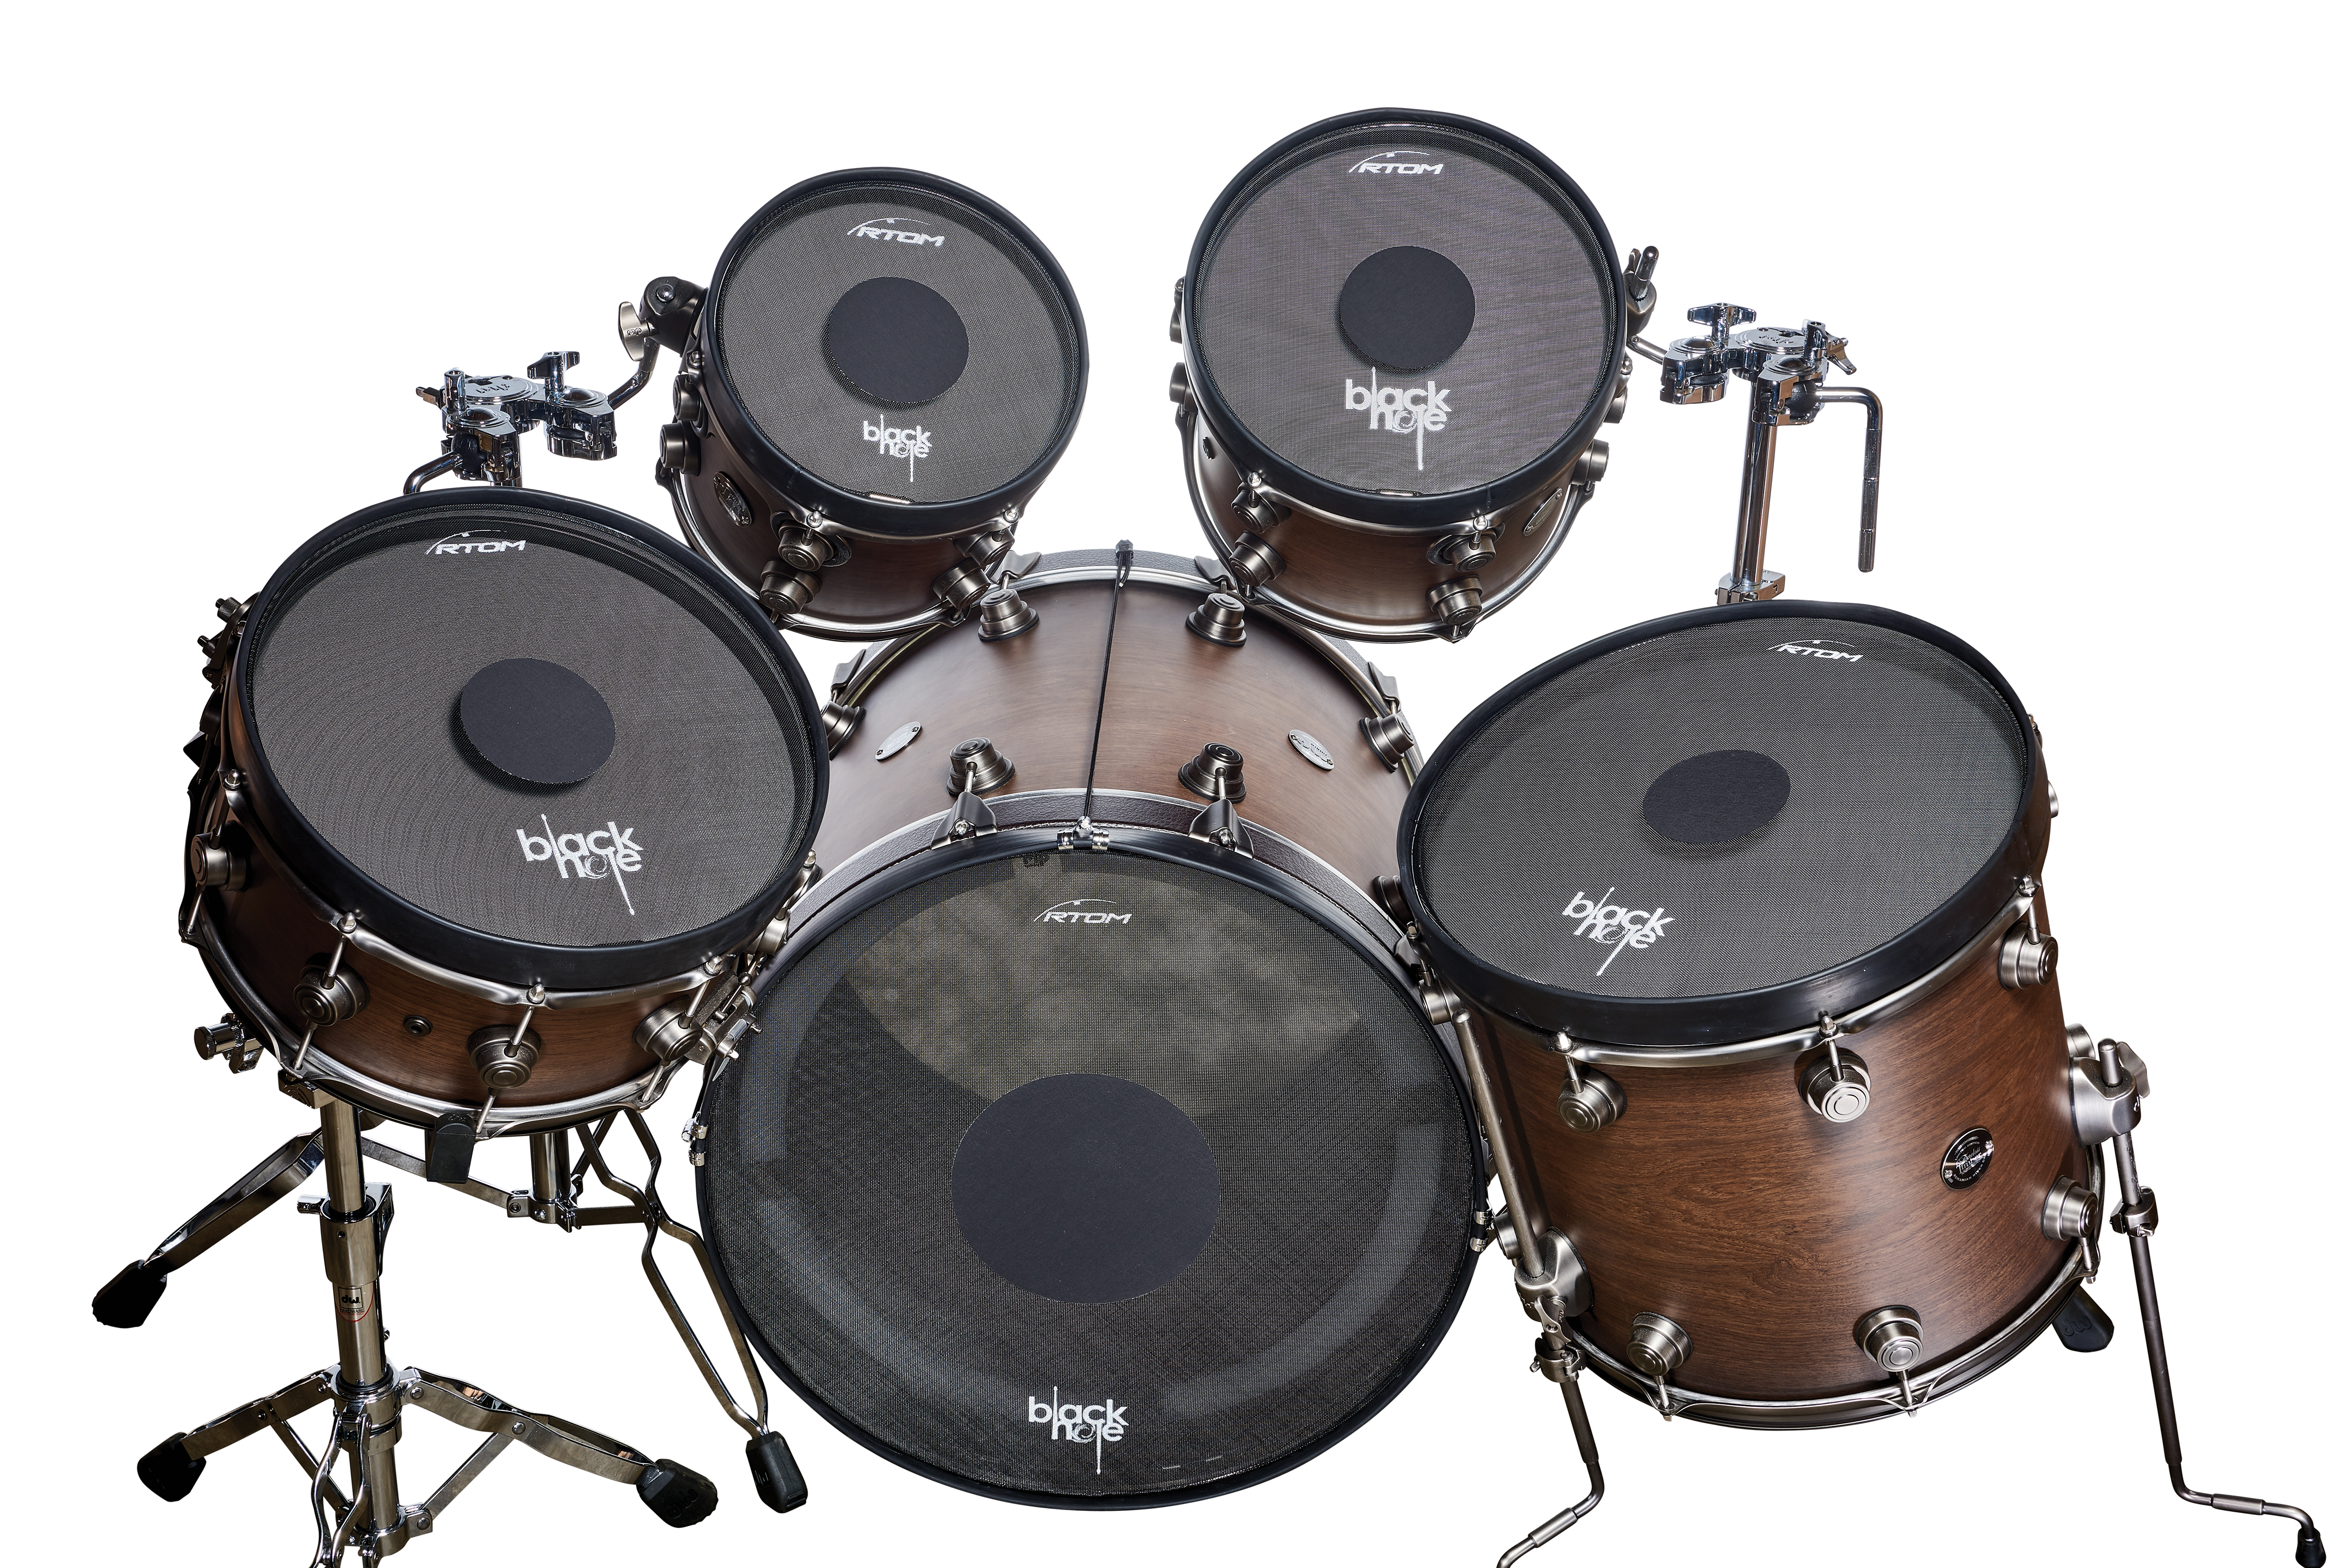 RTOM Makers Of The Ubiquitous Moon Gel Damper Pads Has Developed A New Product Designed To Reduce Sound An Acoustic Kit Up Eighty Percent